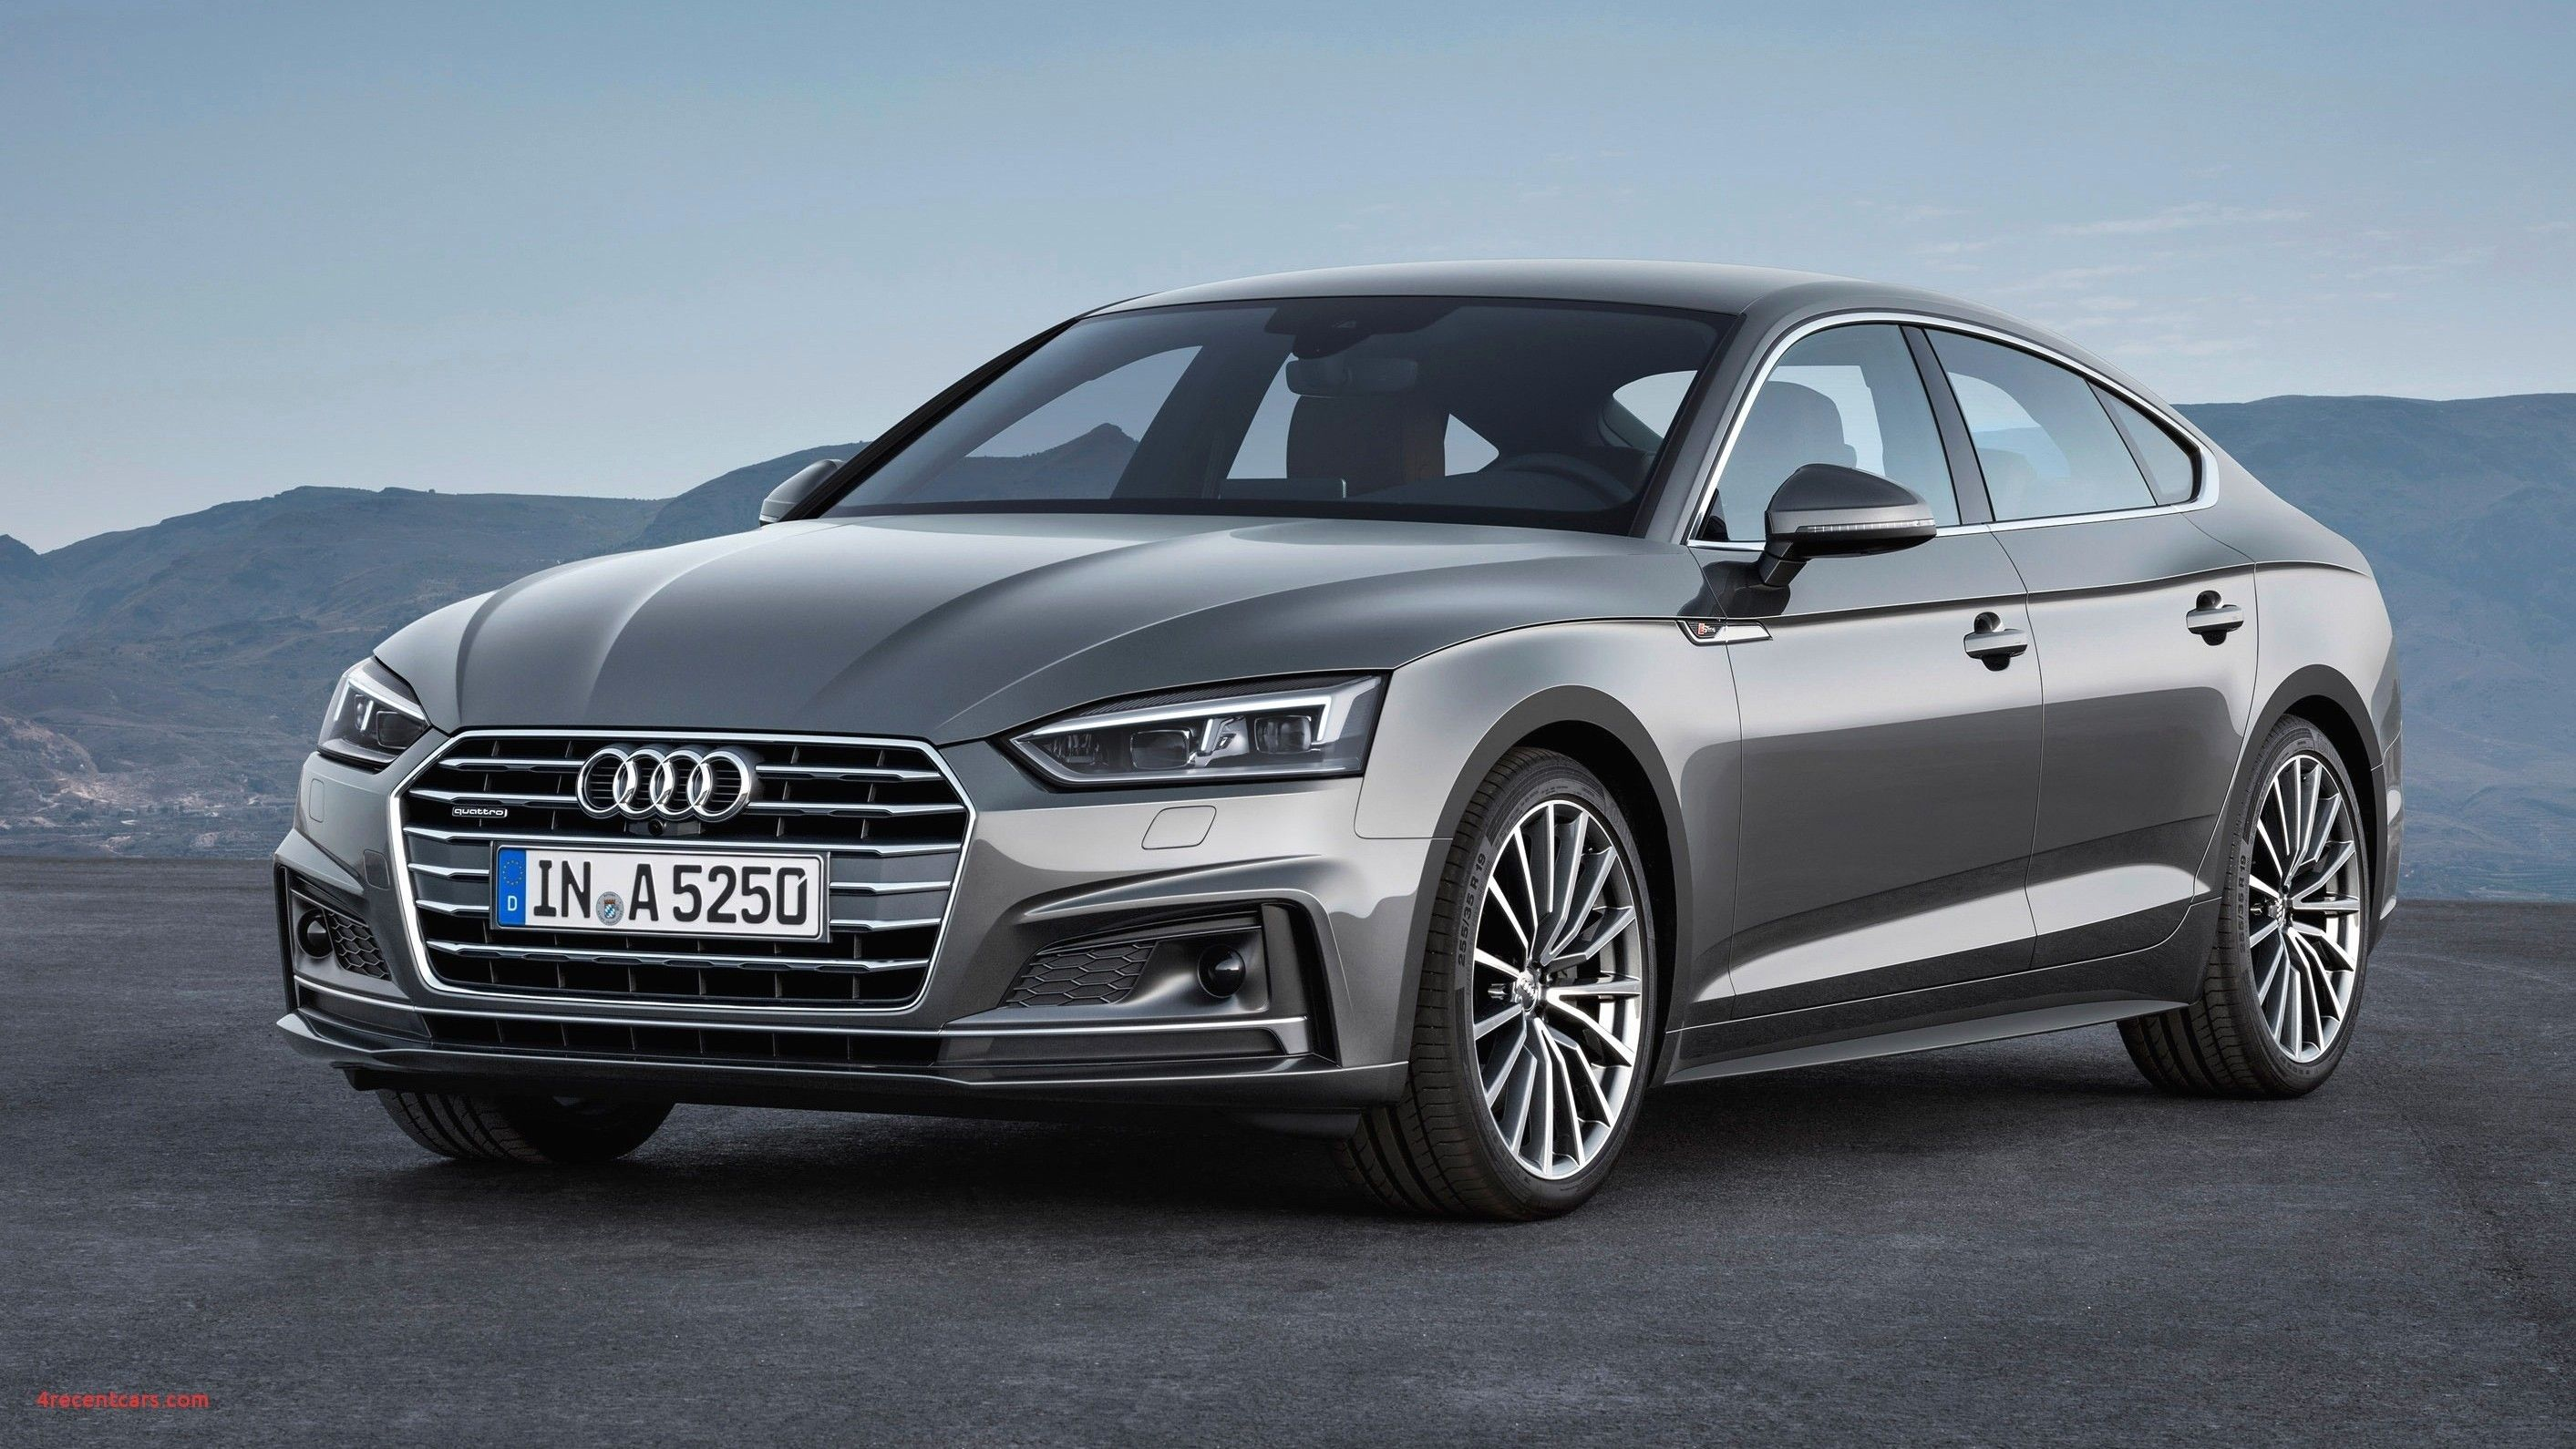 2019 Audi A5 Sportback Review And Specs A5 Sportback Audi A5